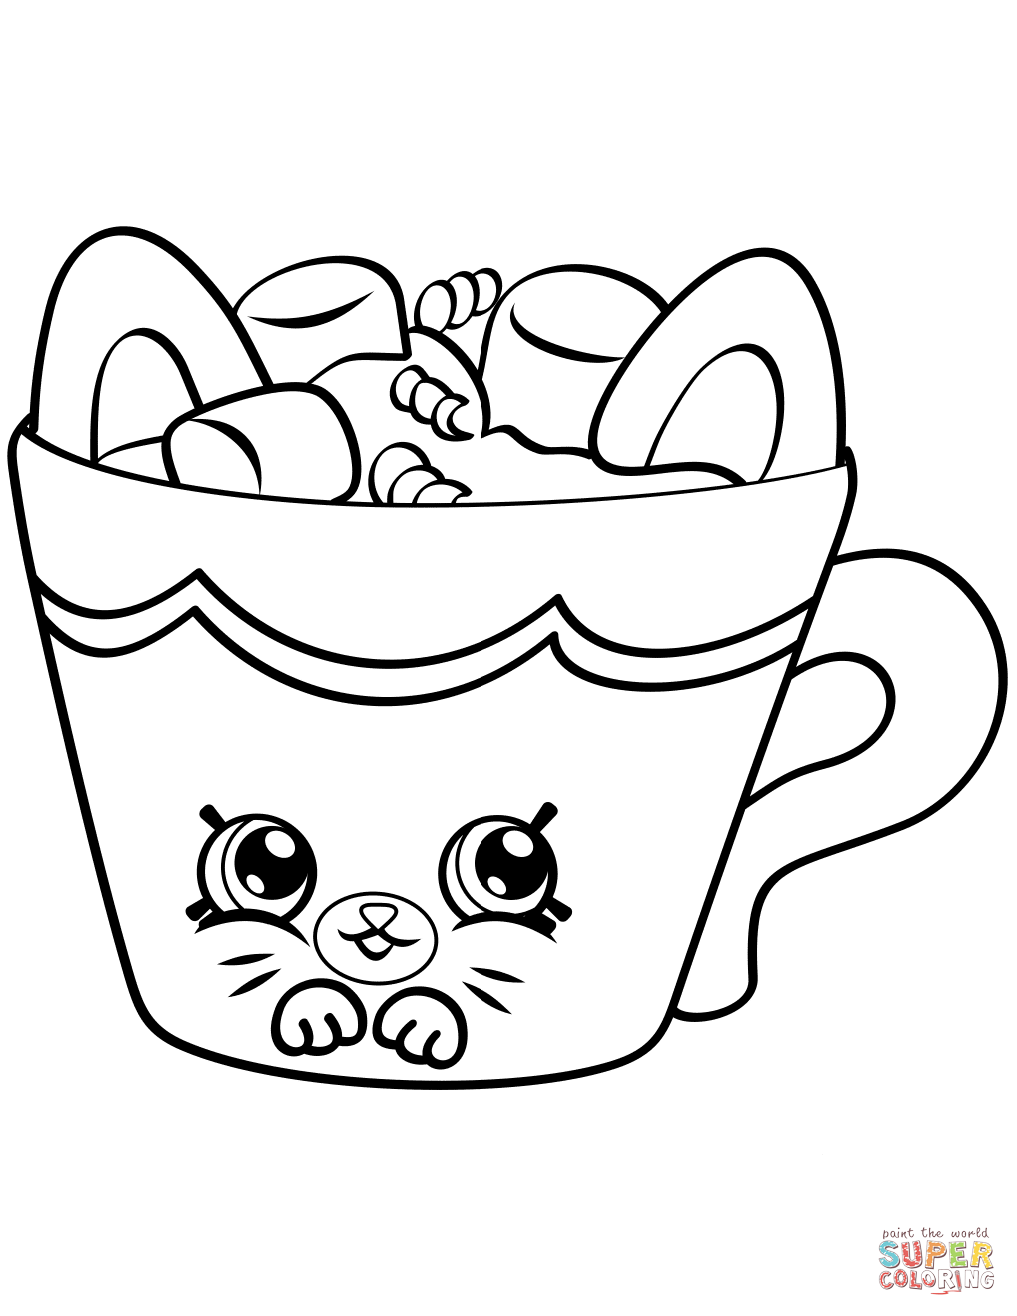 Hot Choc Pe Ins Shopkin Coloring Page Free Printable Coloring Pages